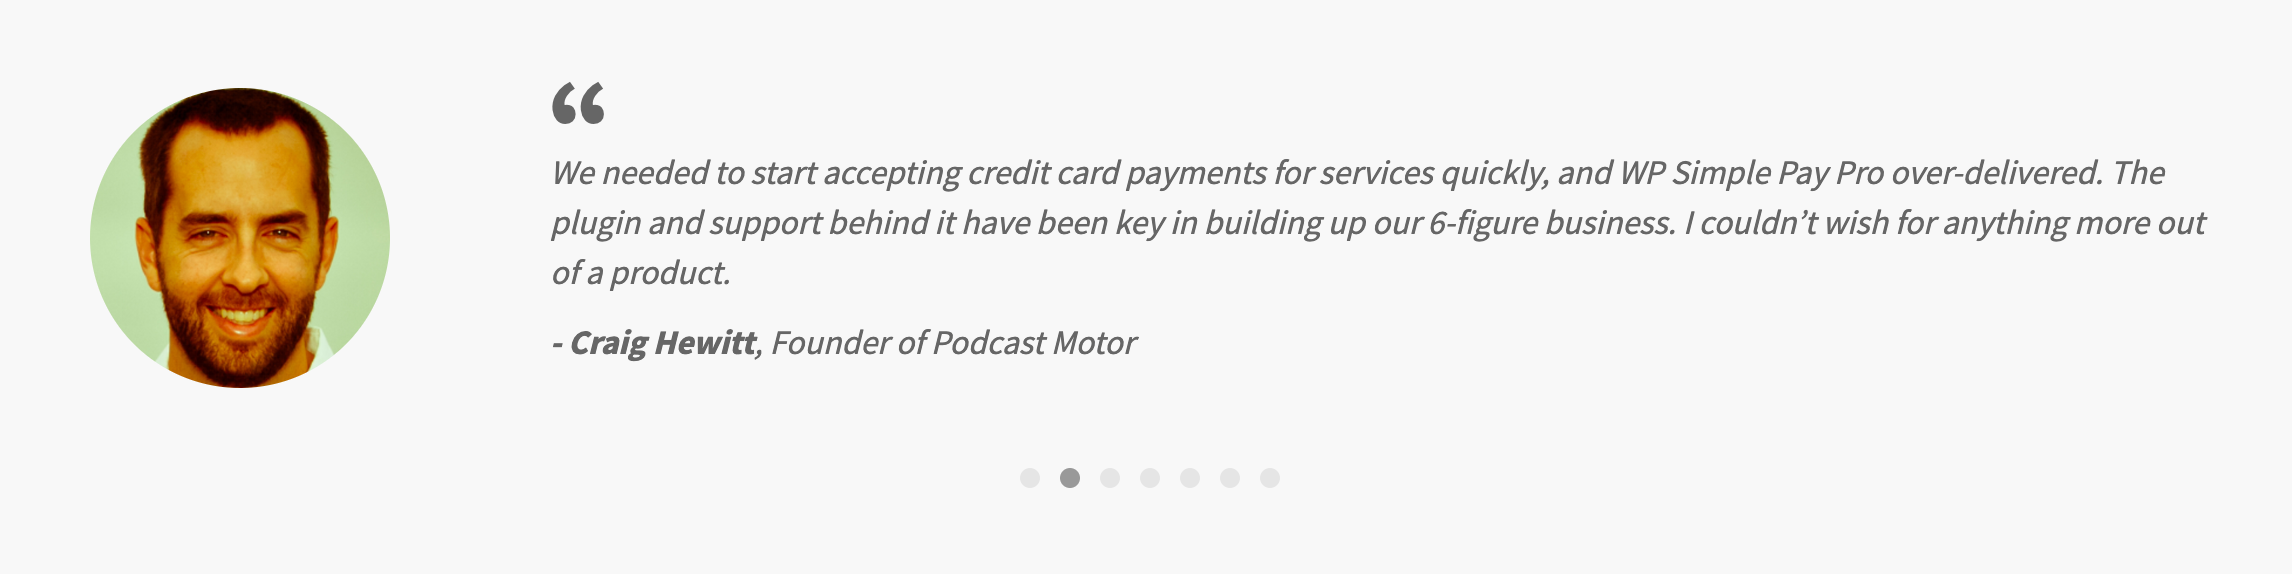 Customer Review- Wp Simple Pay